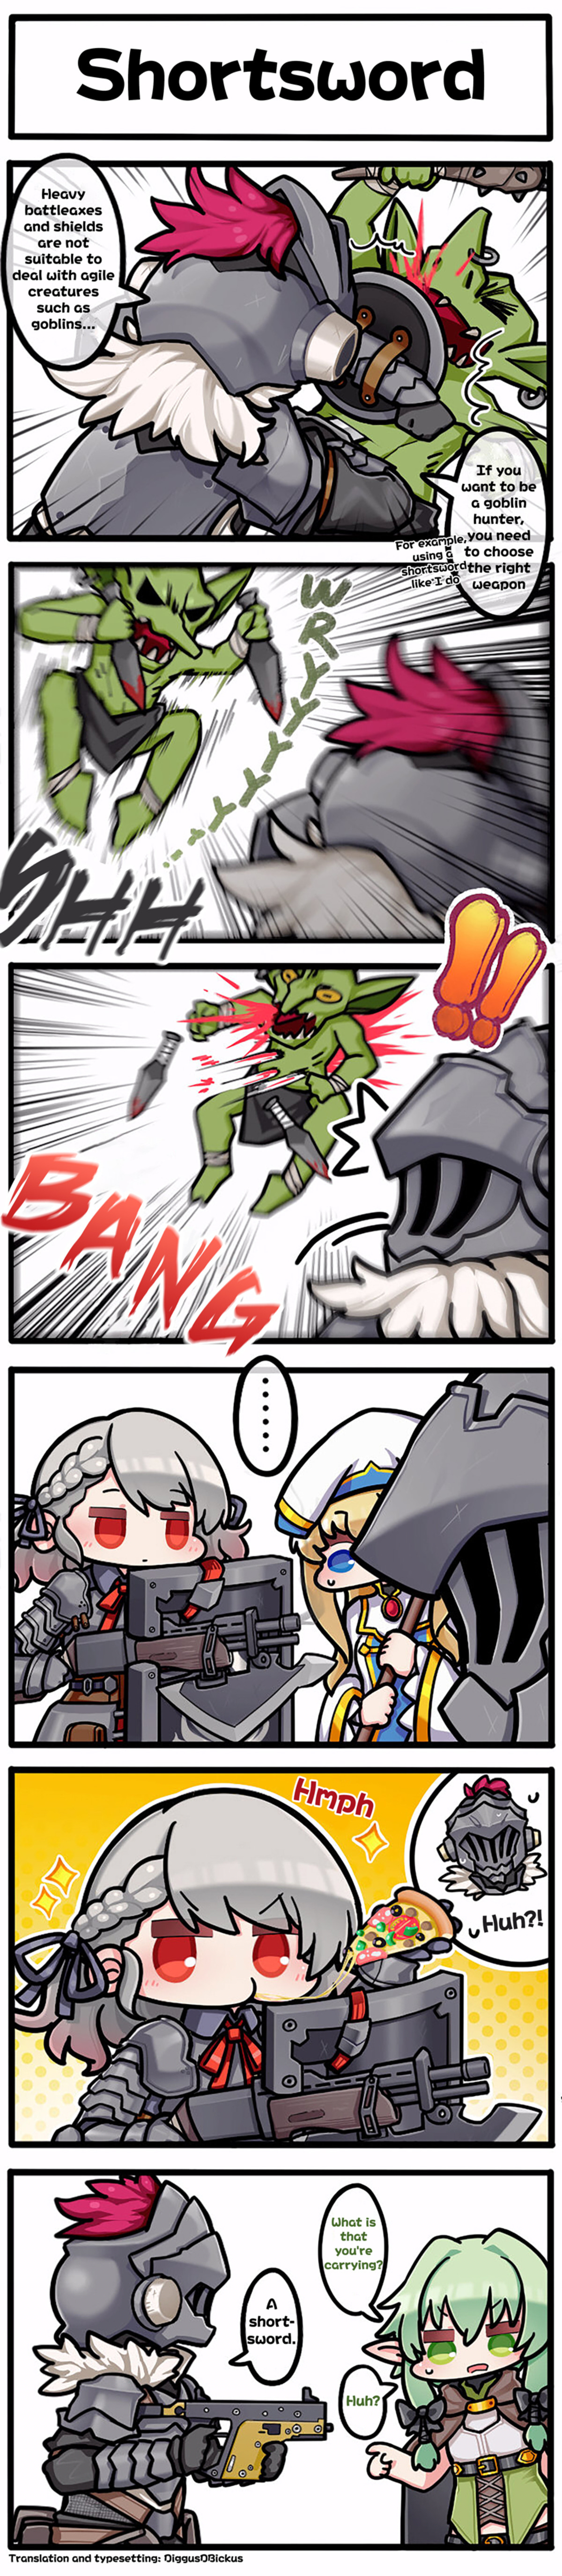 Shortsword. join list: GirlsFrontline (501 subs)Mention Clicks: 73009Msgs Sent: 250407Mention History join list:. That axe on the end of the spas is triggering me